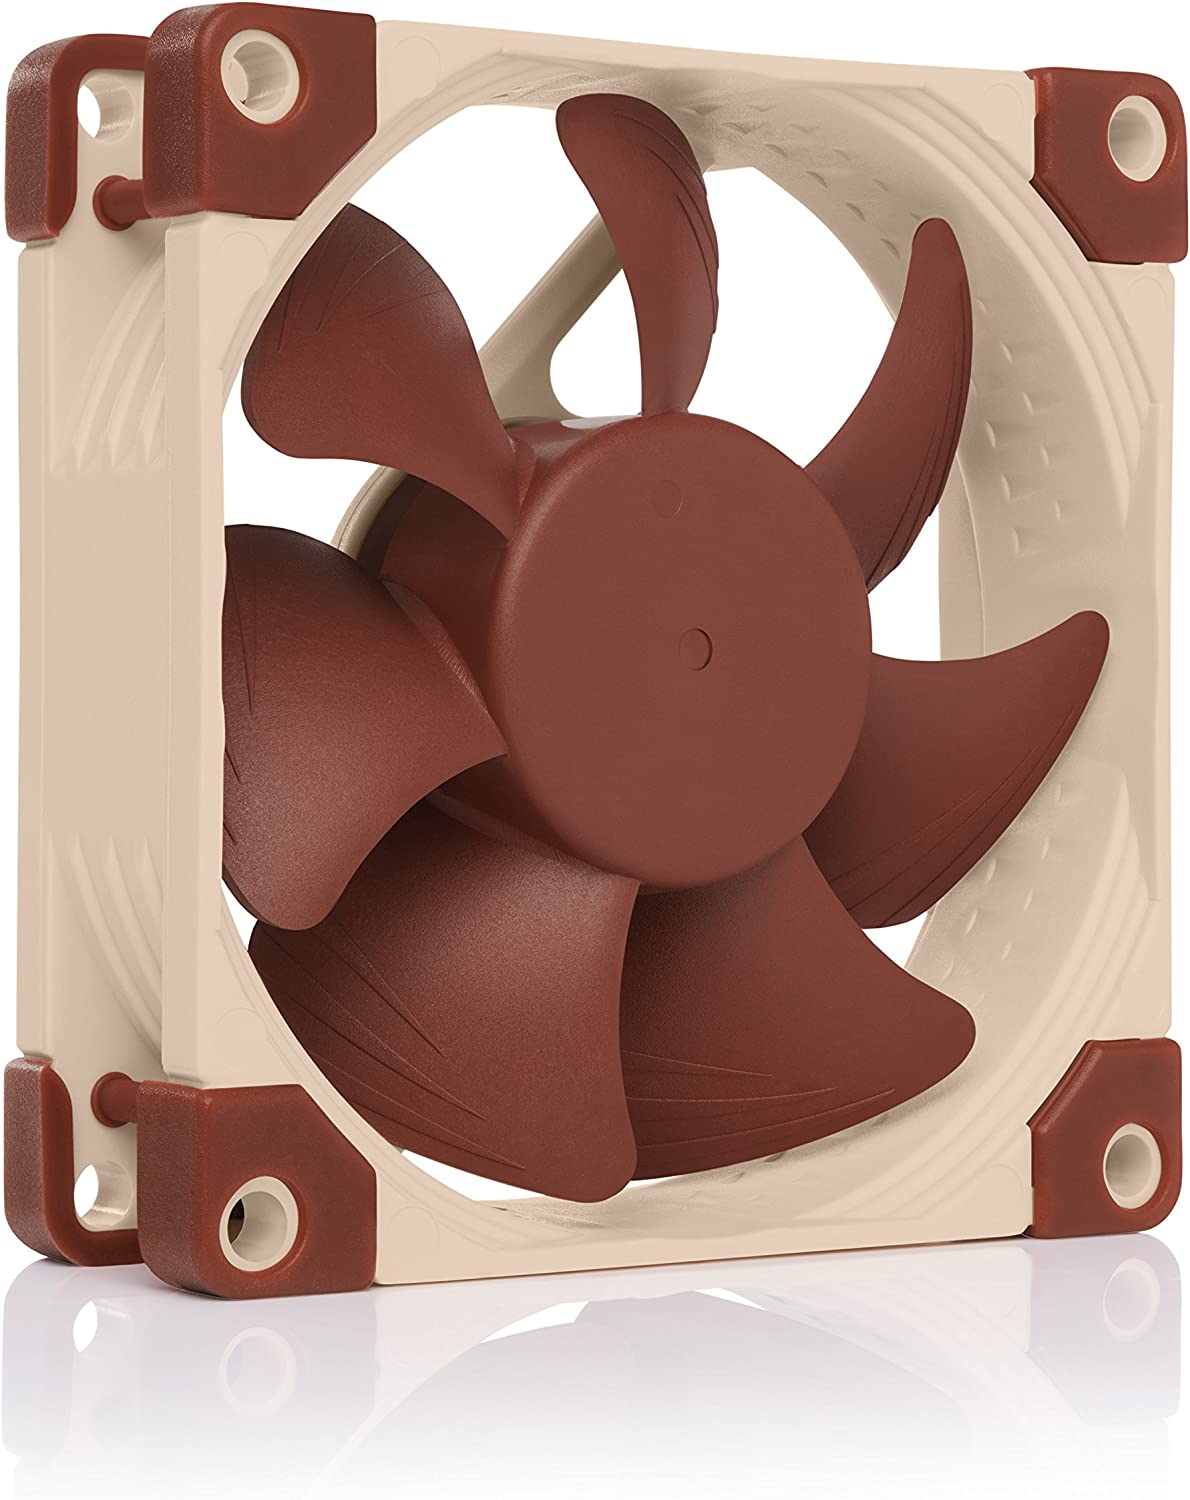 Noctua NF-A8 FLX, Premium Quiet Fan, 3-Pin (80mm, Brown)